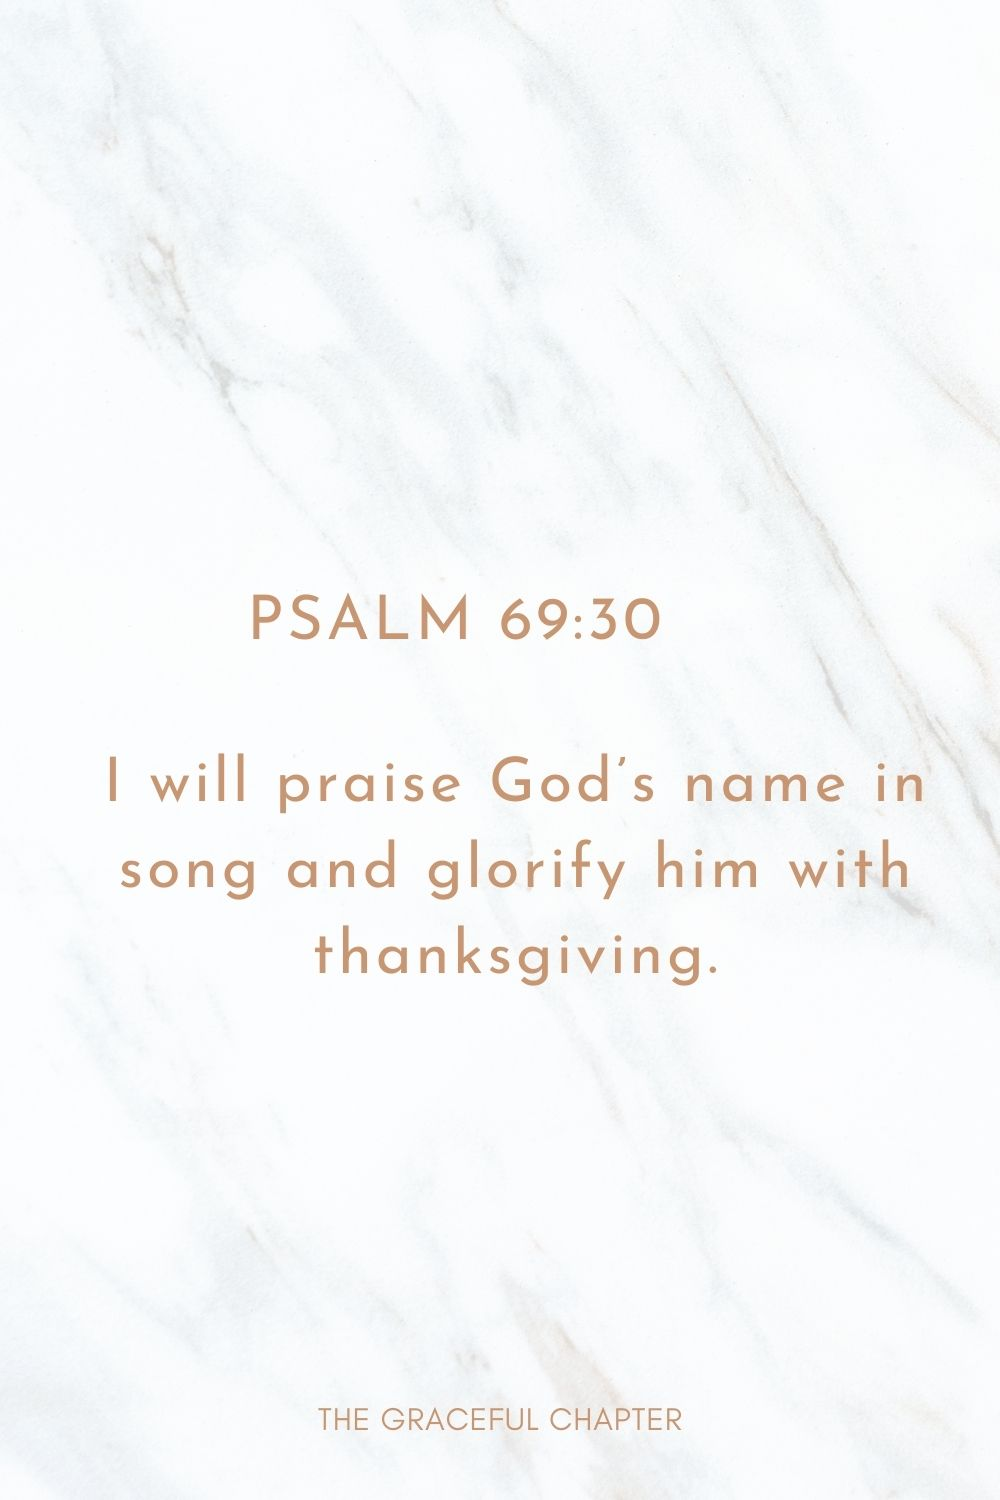 I will praise God's name in song and glorify him with thanksgiving. Psalm 69:30